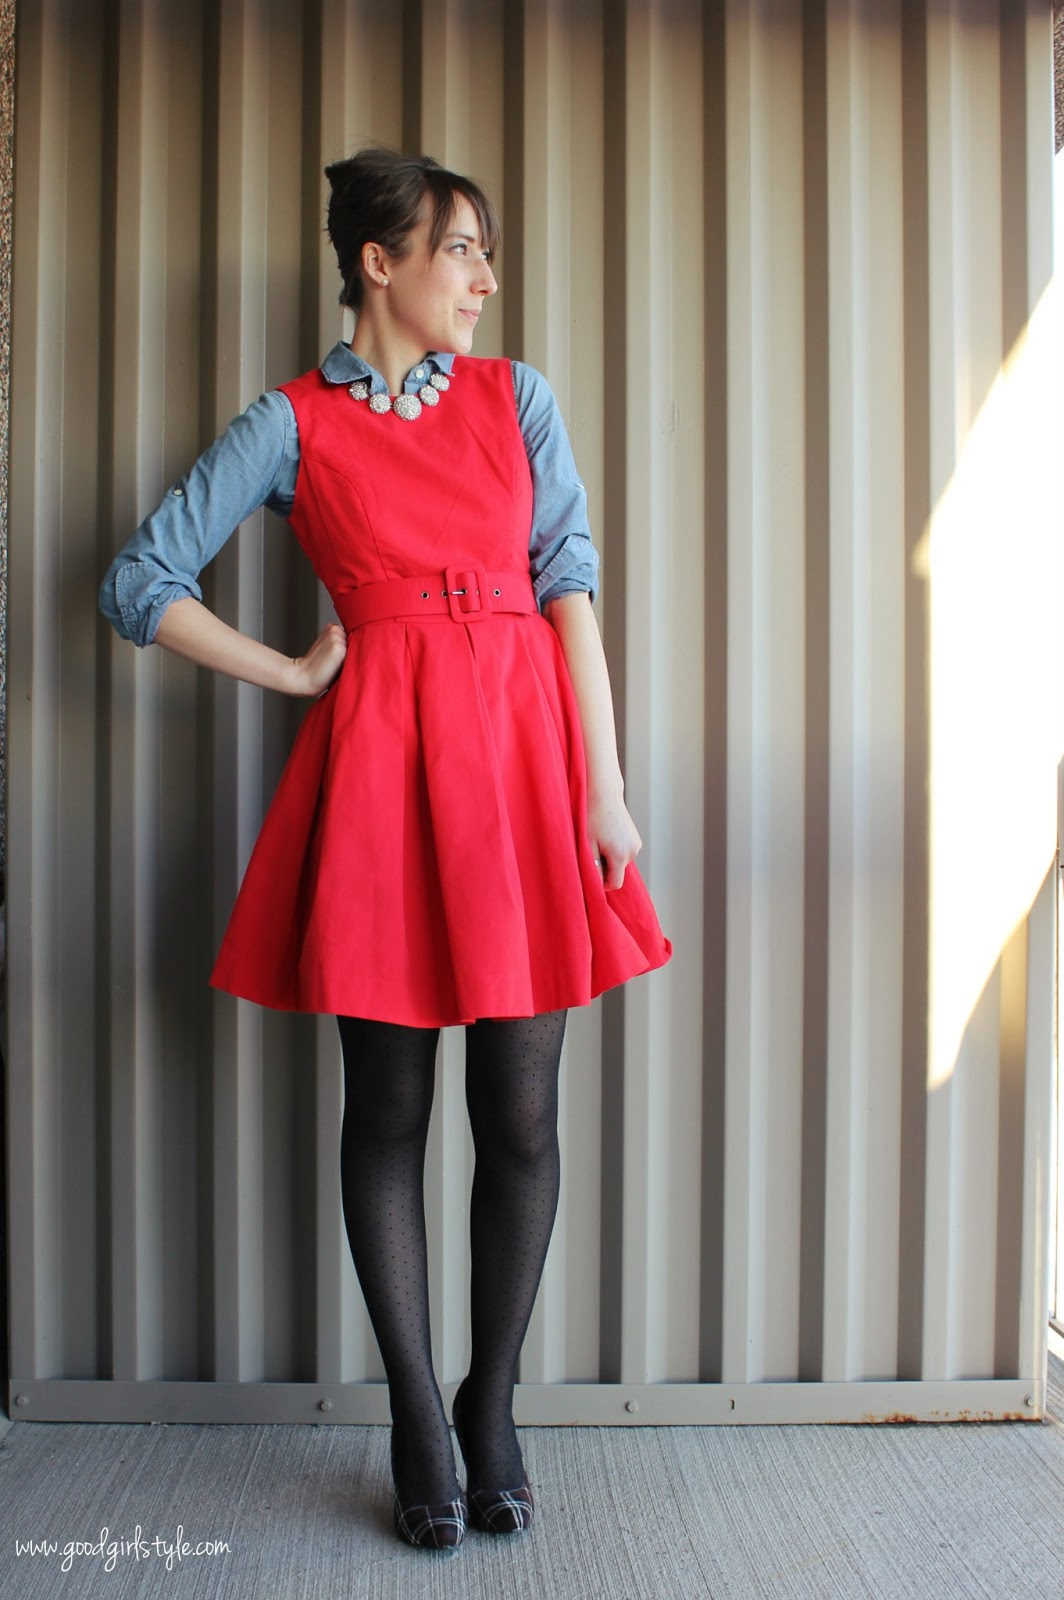 good girl style wearing skirts tights in winter updated version